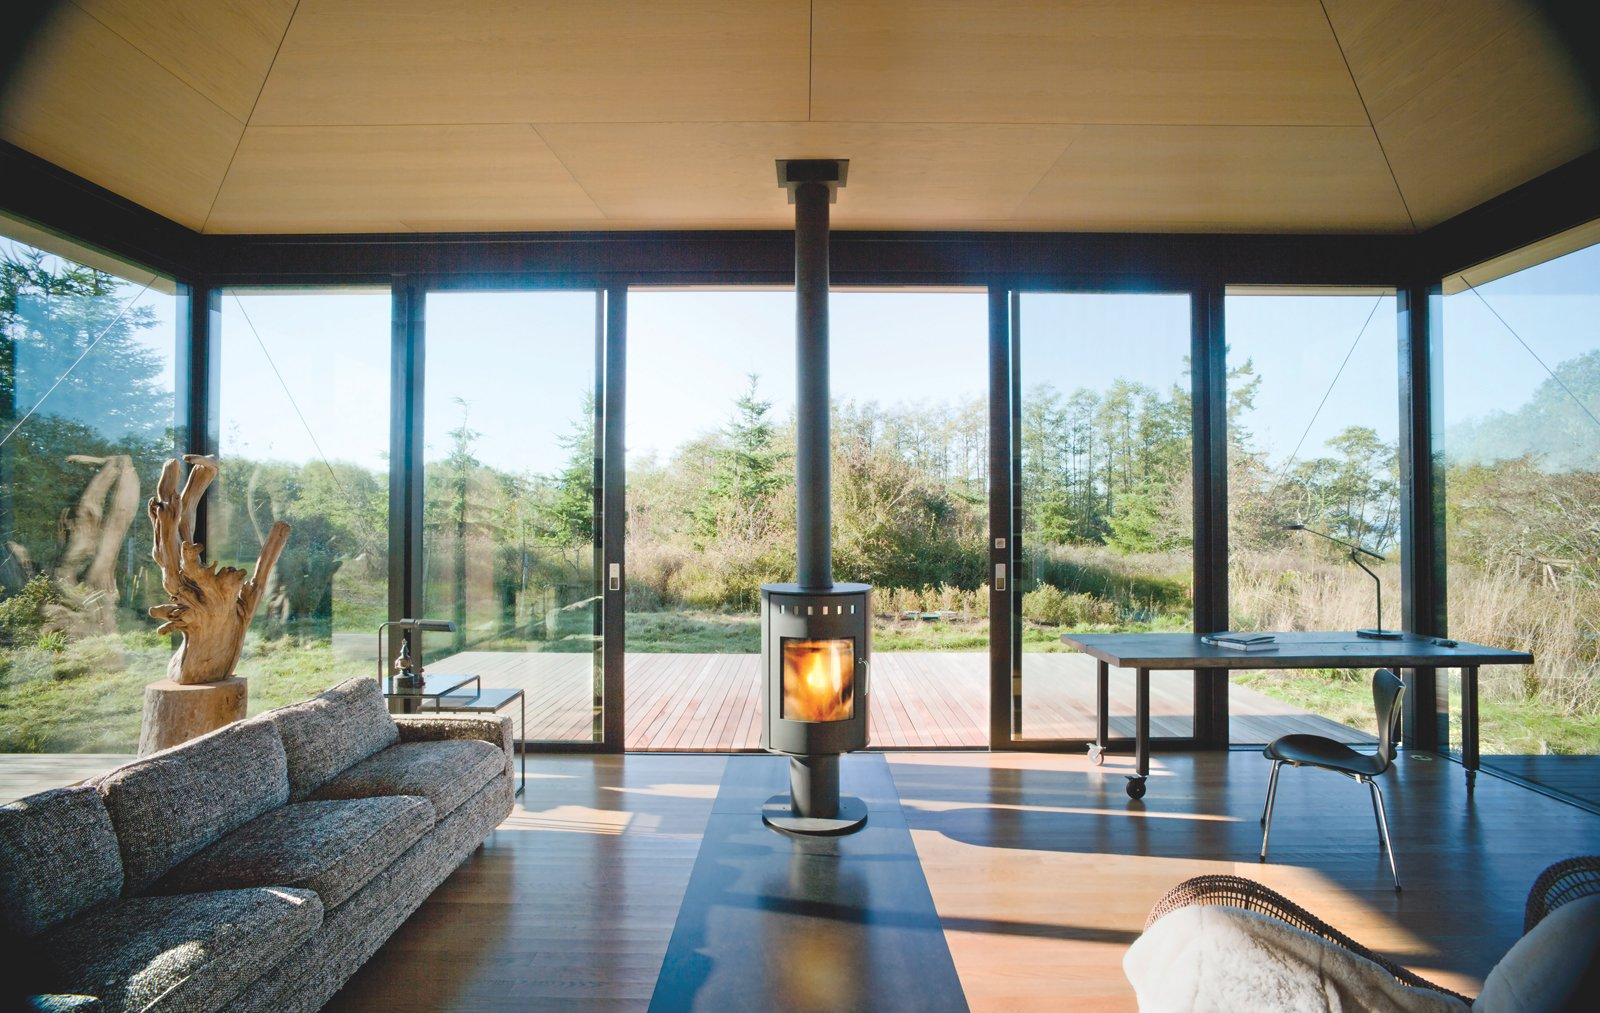 Living Room, Wood Burning Fireplace, and Sofa Architects: Kirsten Murray, Tom Kundig  Photo 2 of 3 in A Minimal Writer's Retreat in the Pacific Northwest